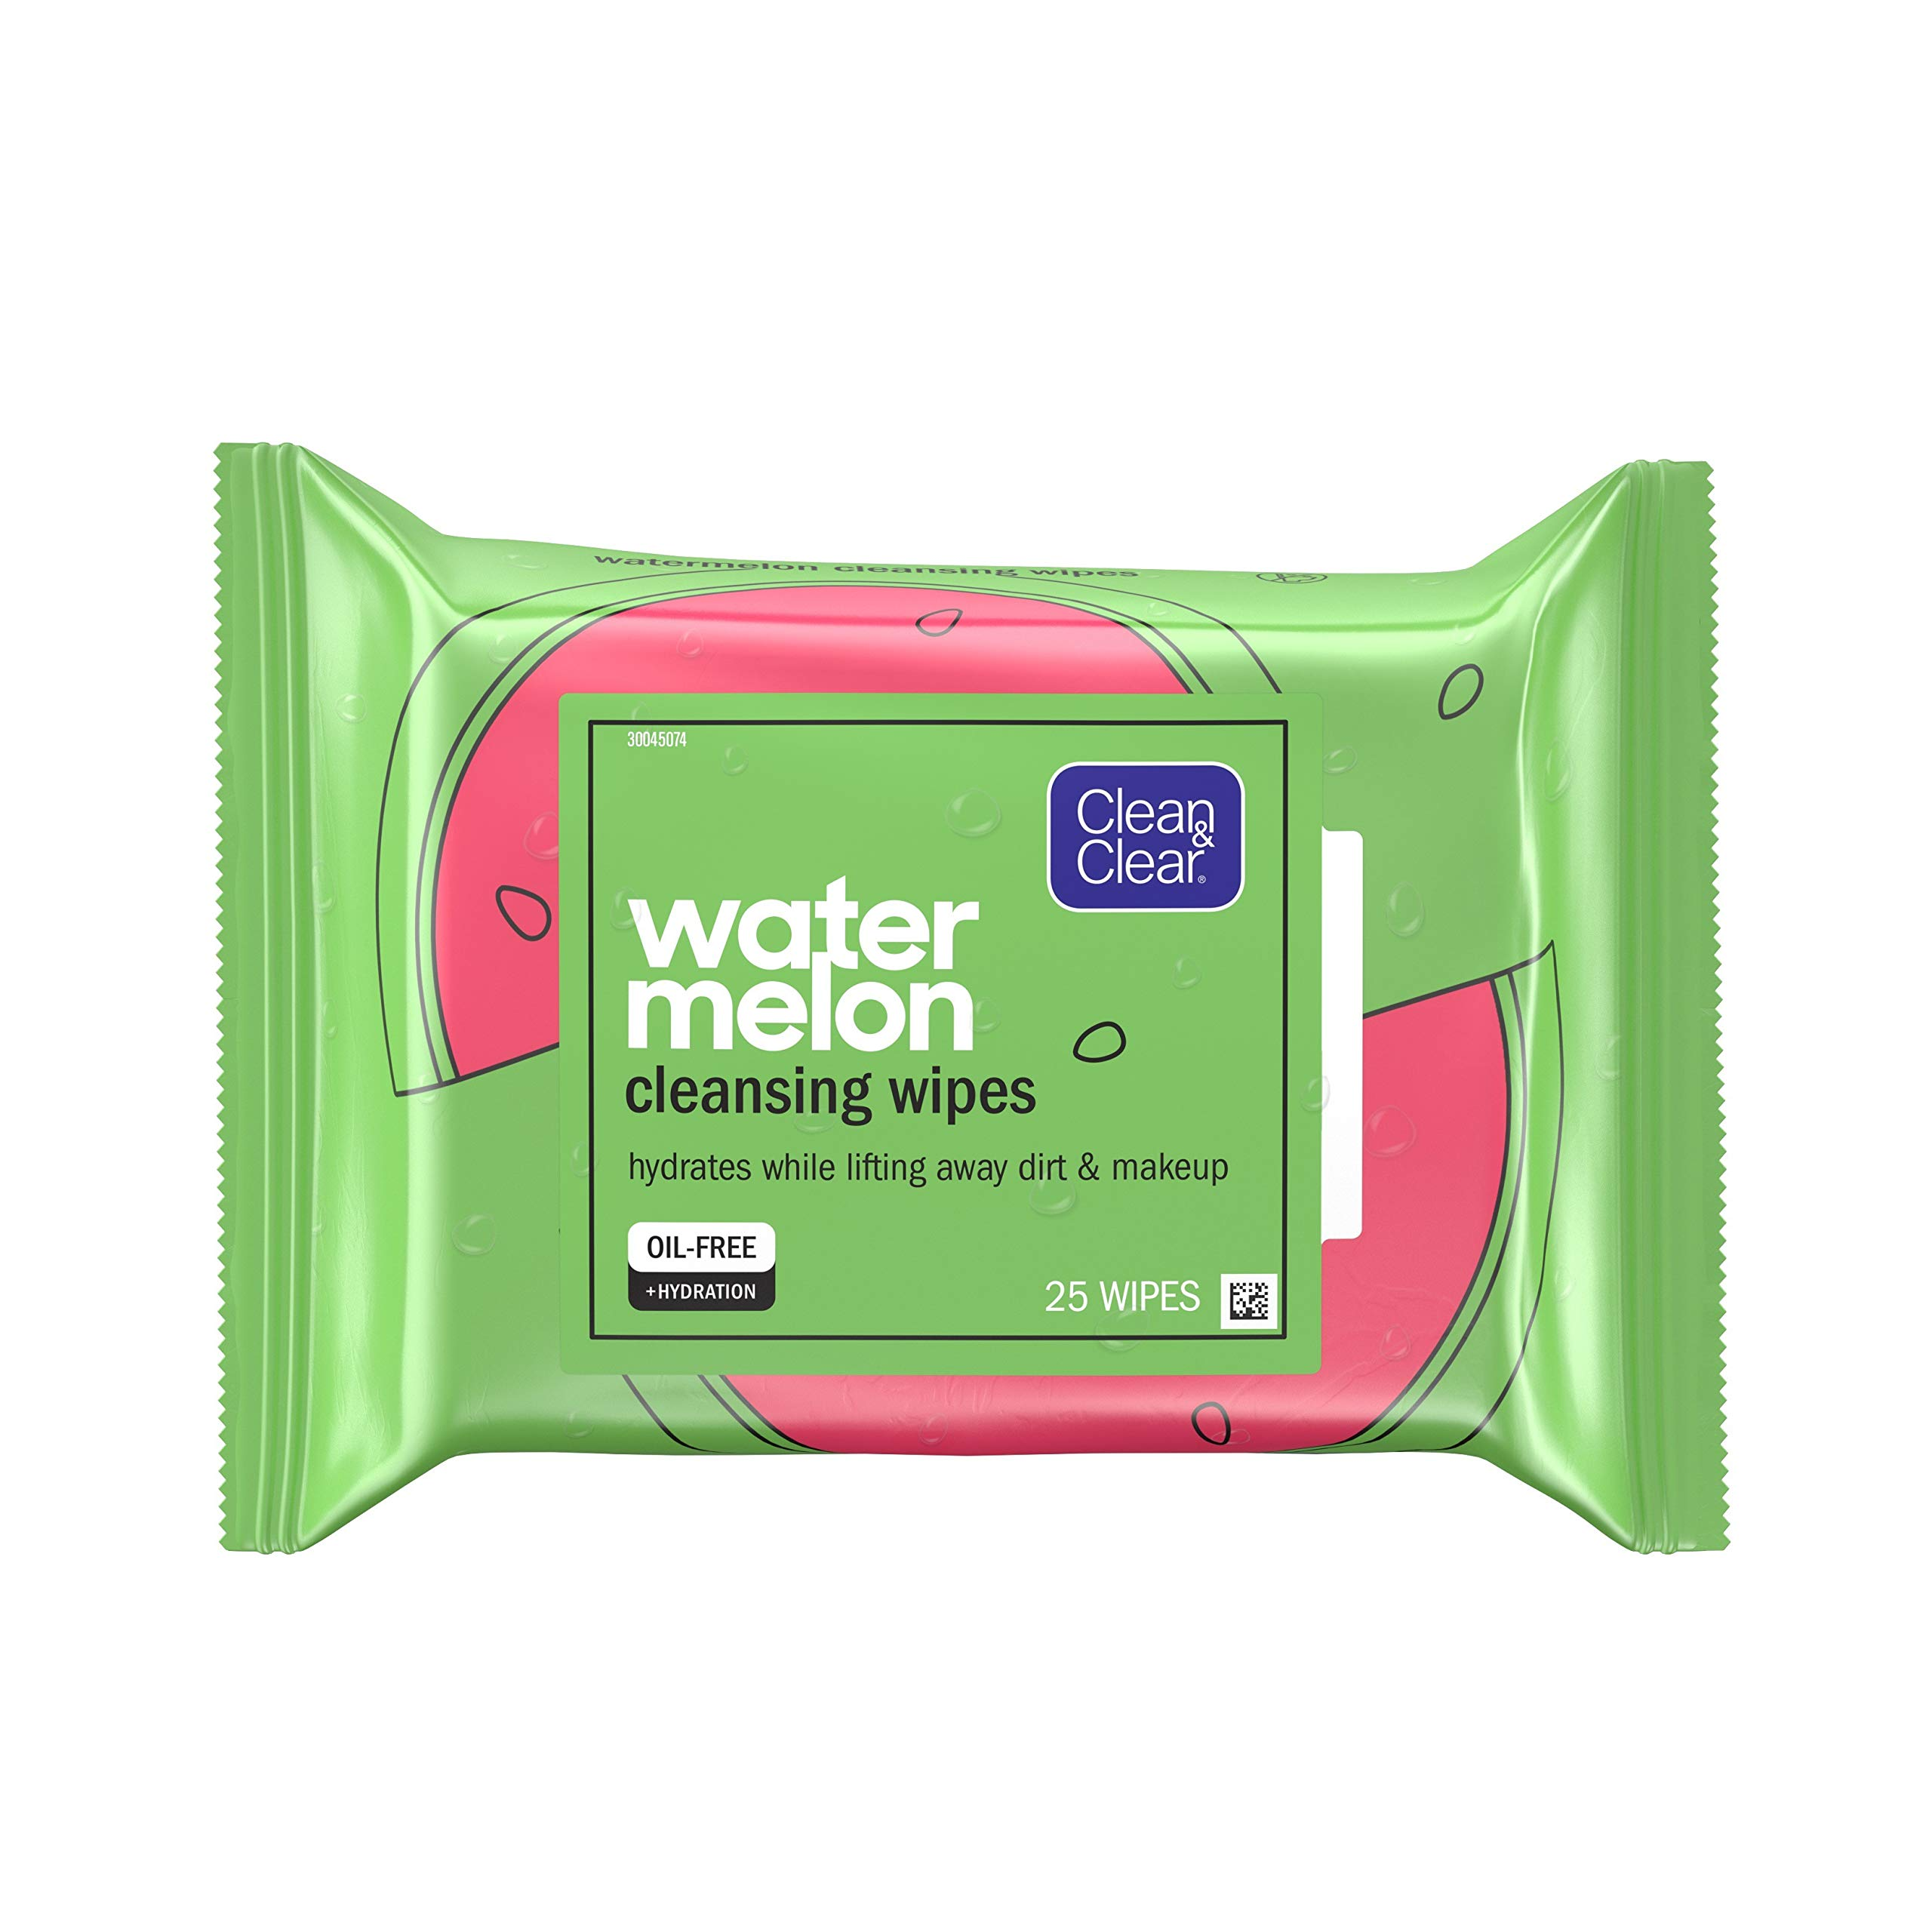 Clean & Clear Hydrating Watermelon Facial Cleansing Wipes to Remove Makeup, Dirt & Impurities, Oil-Free Pre-Moistened Daily Face Wipes, Convenient & Travel-Friendly, 25 ct